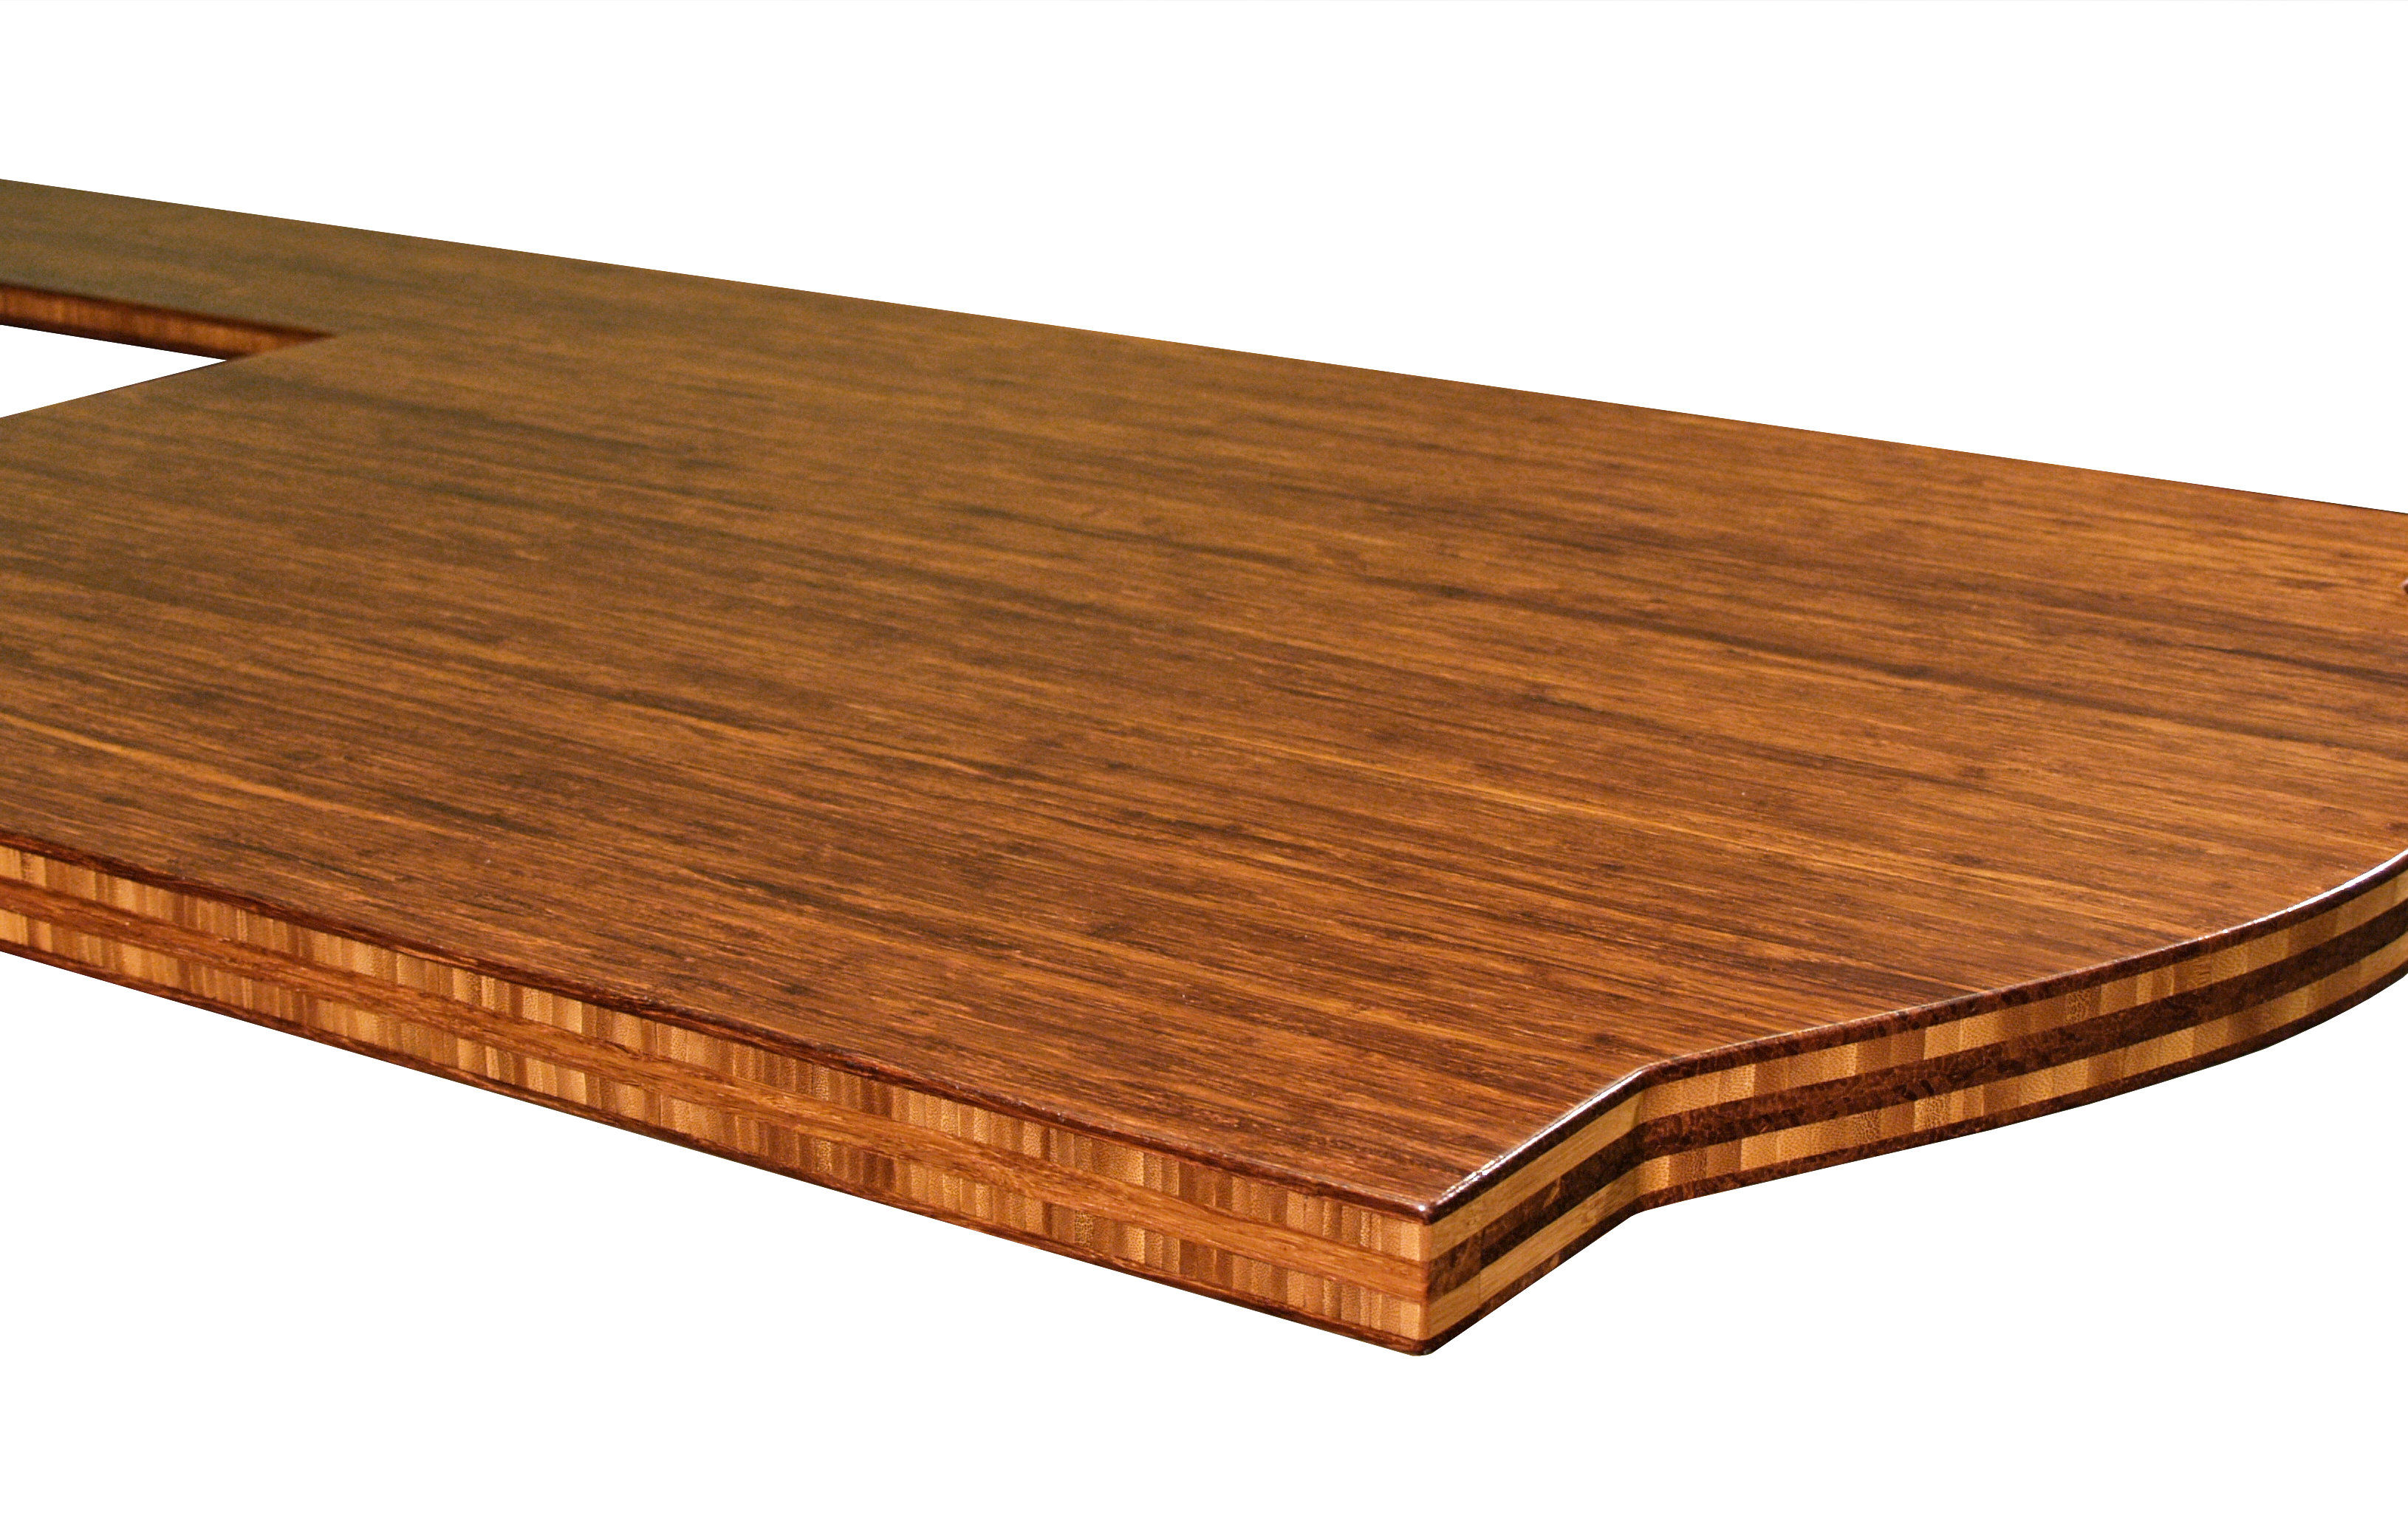 Bamboo Face Grain Custom Wood Island Countertop